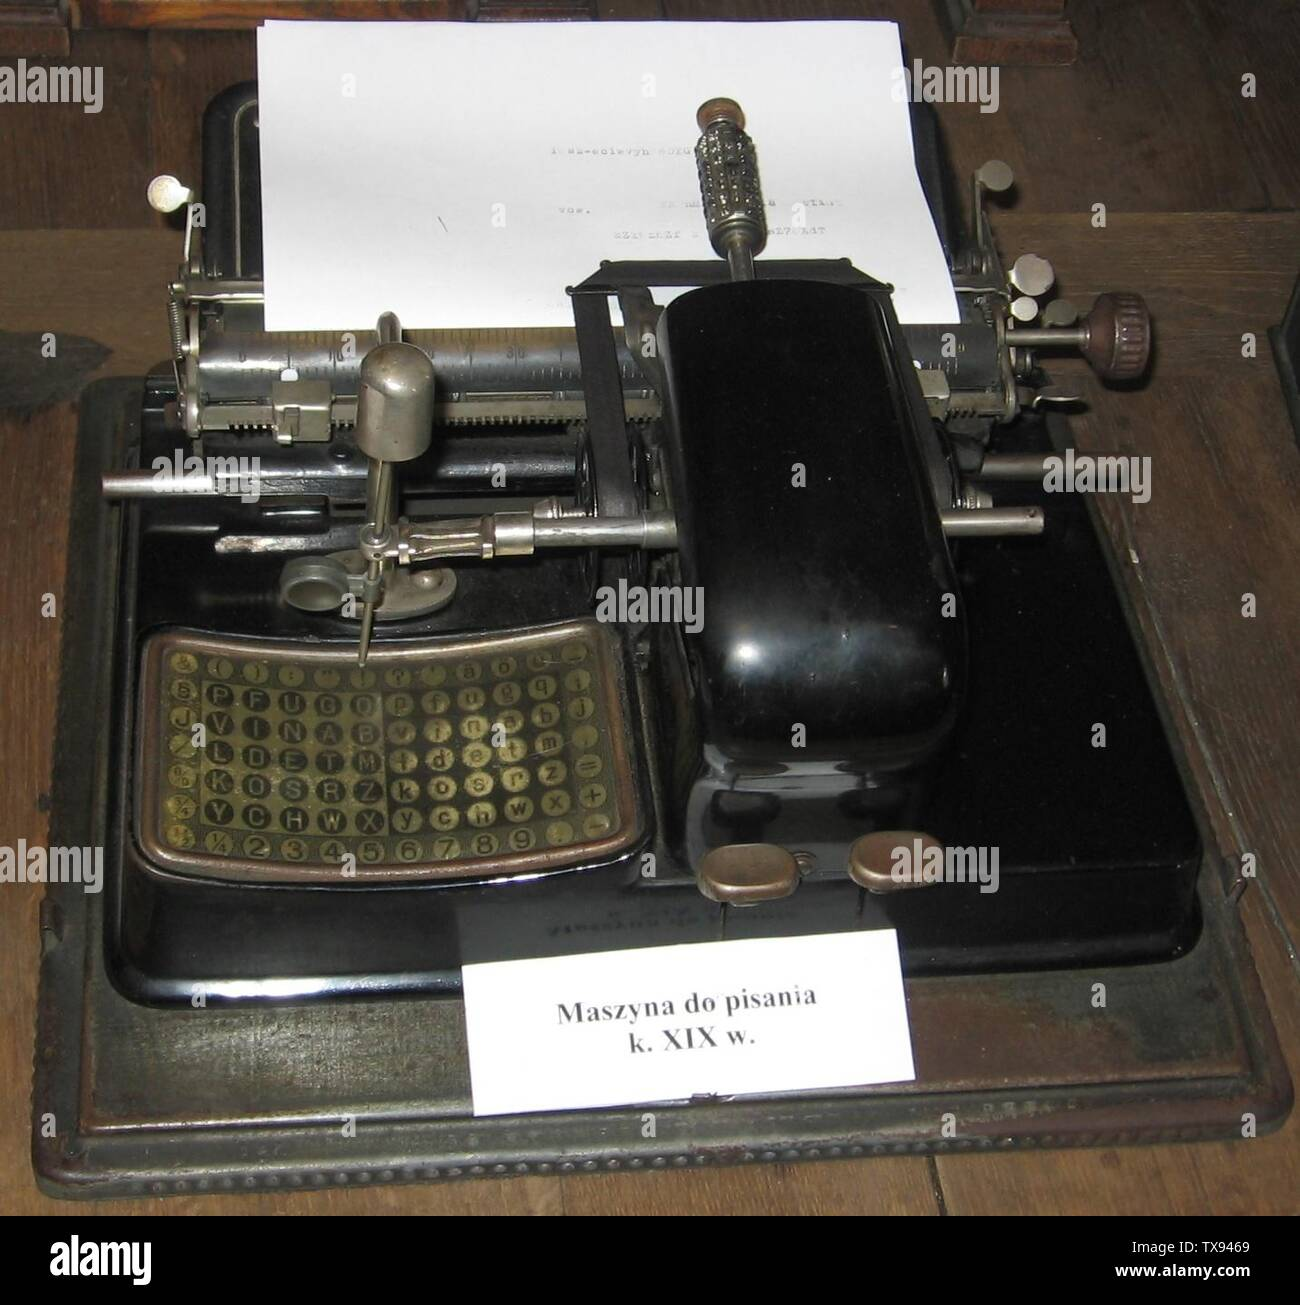 'English: Early typewriter, the Mignon, produced from 1905 to 1934 by Allgemeinen Elektrizitaets-Gesellschaft (AEG), Berlin, Germany. This was called an index typewriter; to operate it, the pointer was pointed at a letter, and the key to the right was pressed to type it.  The types are on a metal 'typesleeve' seen at top, which could be changed to type different fonts and character sets for different languages.  The Mignon was the most successful index typewriter, and was exported to other European countries.  This model was probably the Mignon 3, since it doesn't have a backspace key to the r - Stock Image